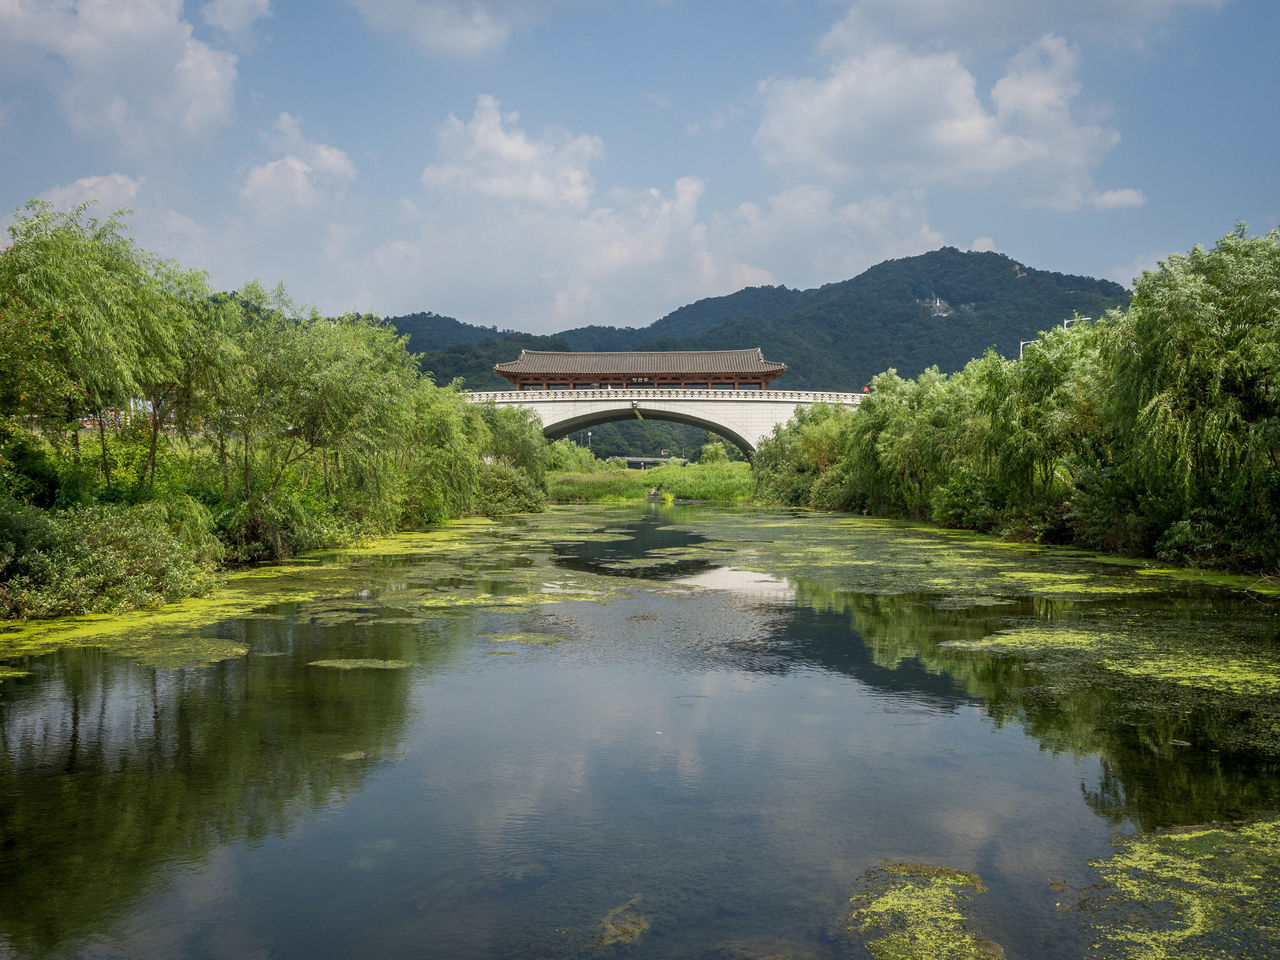 Architecture Bridge Bridge - Man Made Structure Bridge Arch Bridge Over Water Clear Day Korea Korean Bridge Nature Outdoors Reflection River River And Bridge River And Trees Sky Traditional Architecture Travel Destinations Water